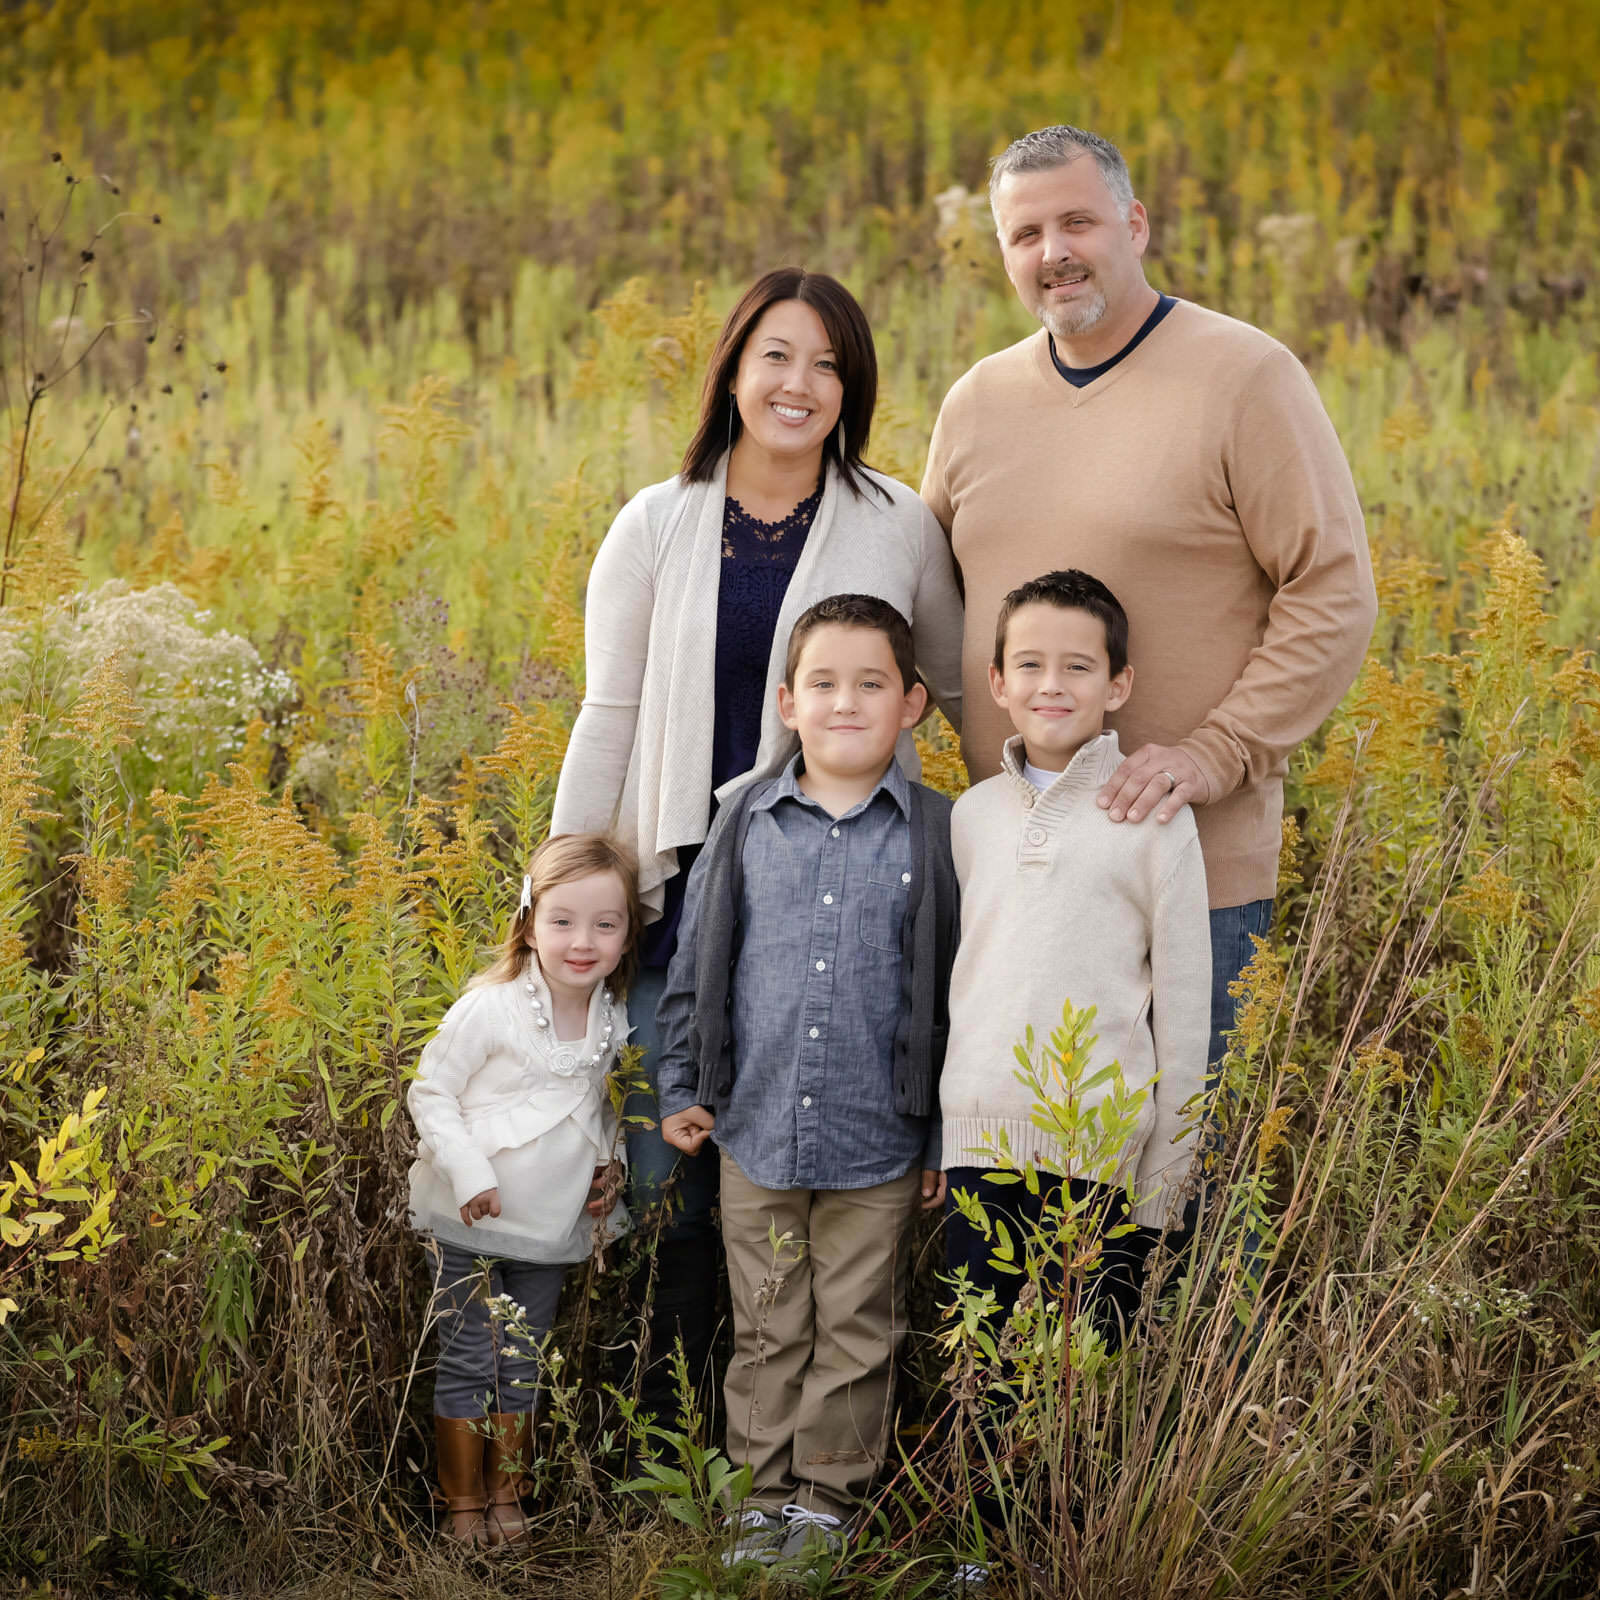 Downers_Grove_awesome_natural_lifestyle_children_and_family_portrait_photography_by_Summer_Brader_ac0002